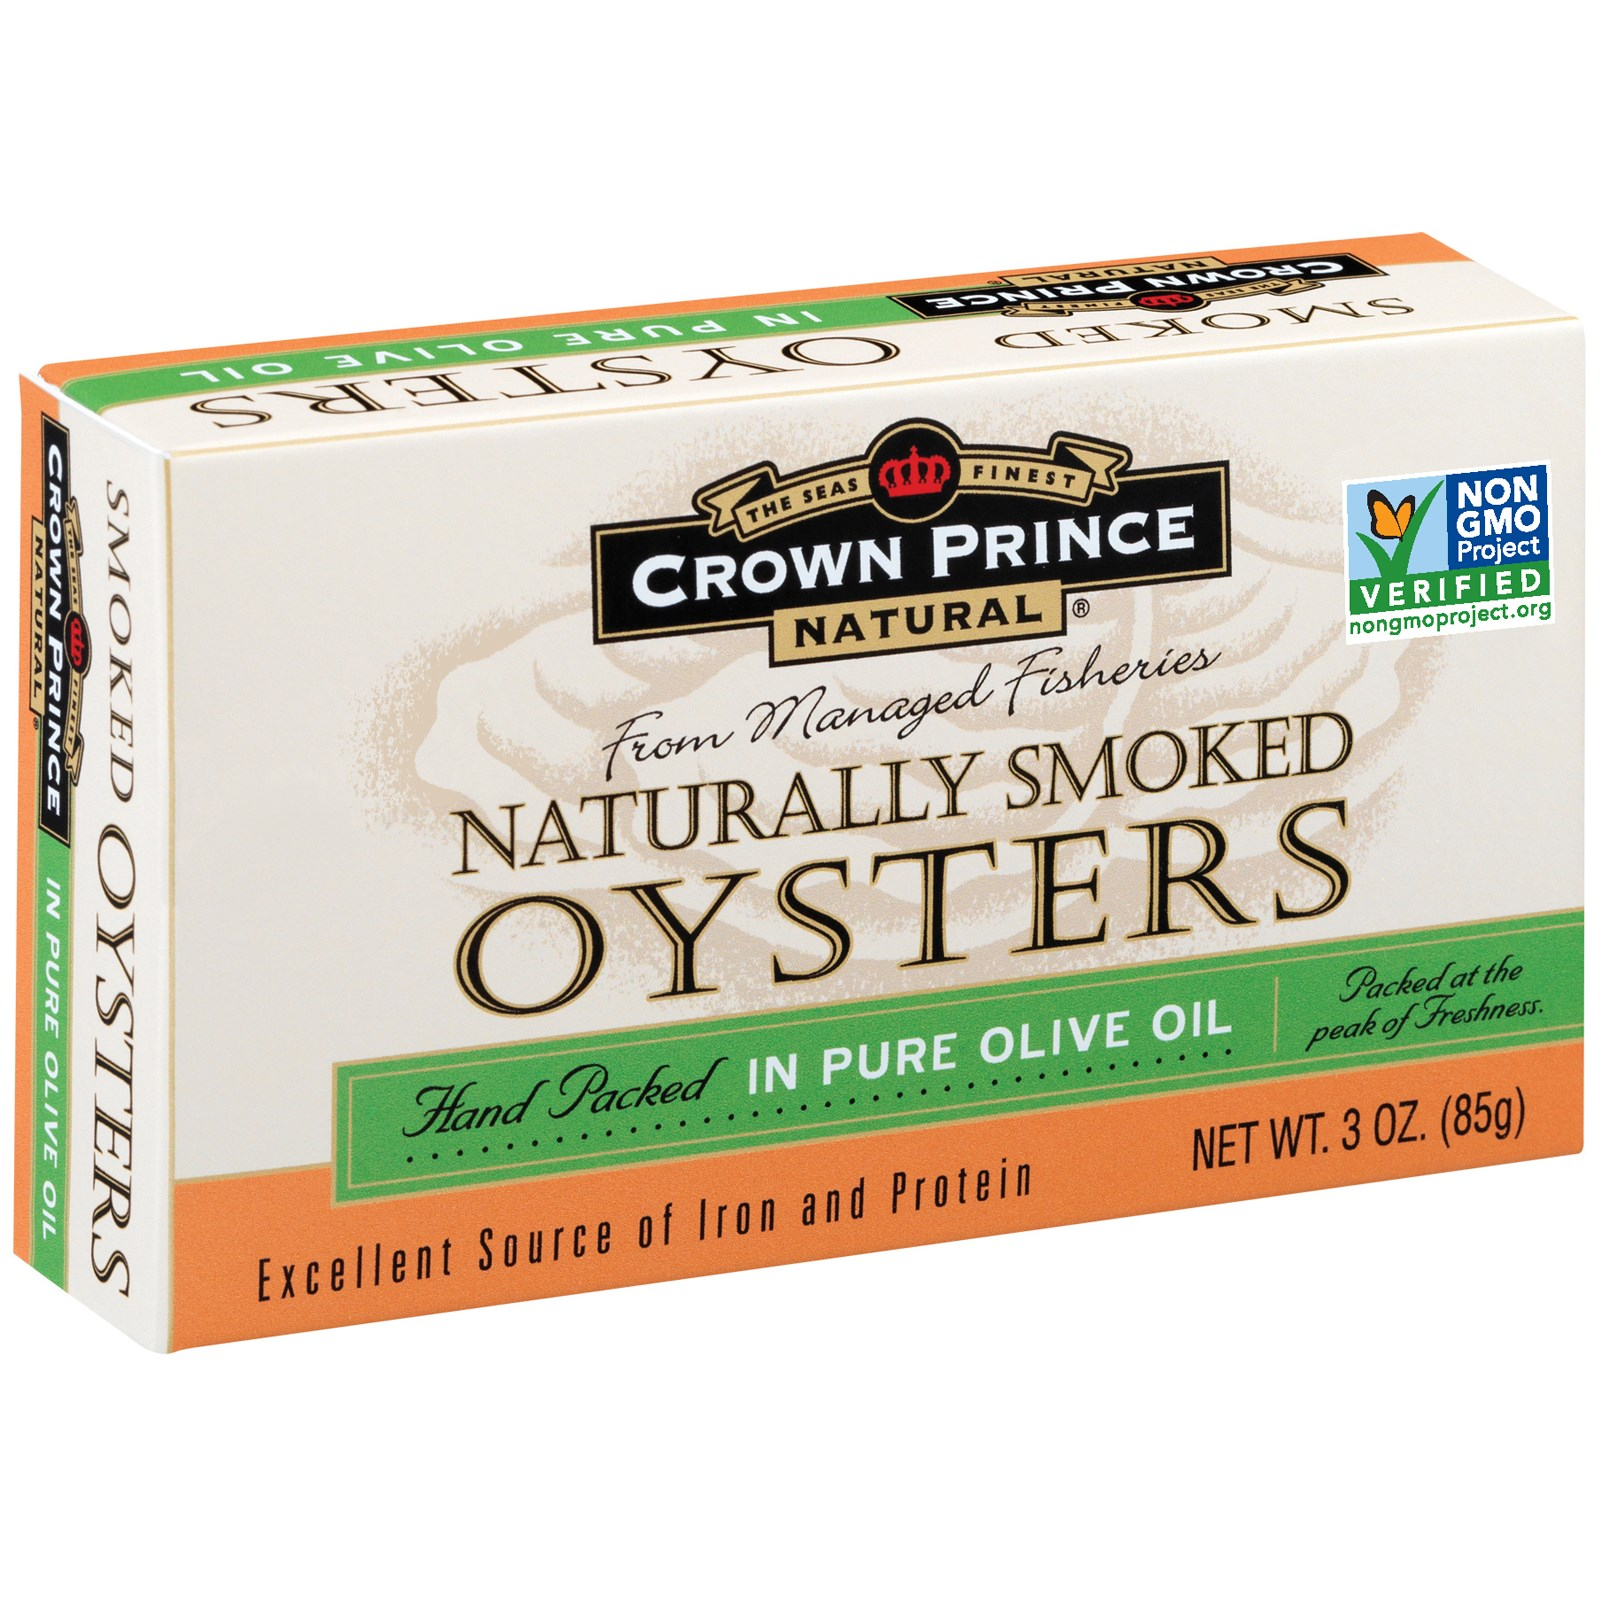 Crown Prince Natural, Naturally Smoked Oysters, In Pure Olive Oil, 3 oz (pack of 1) by